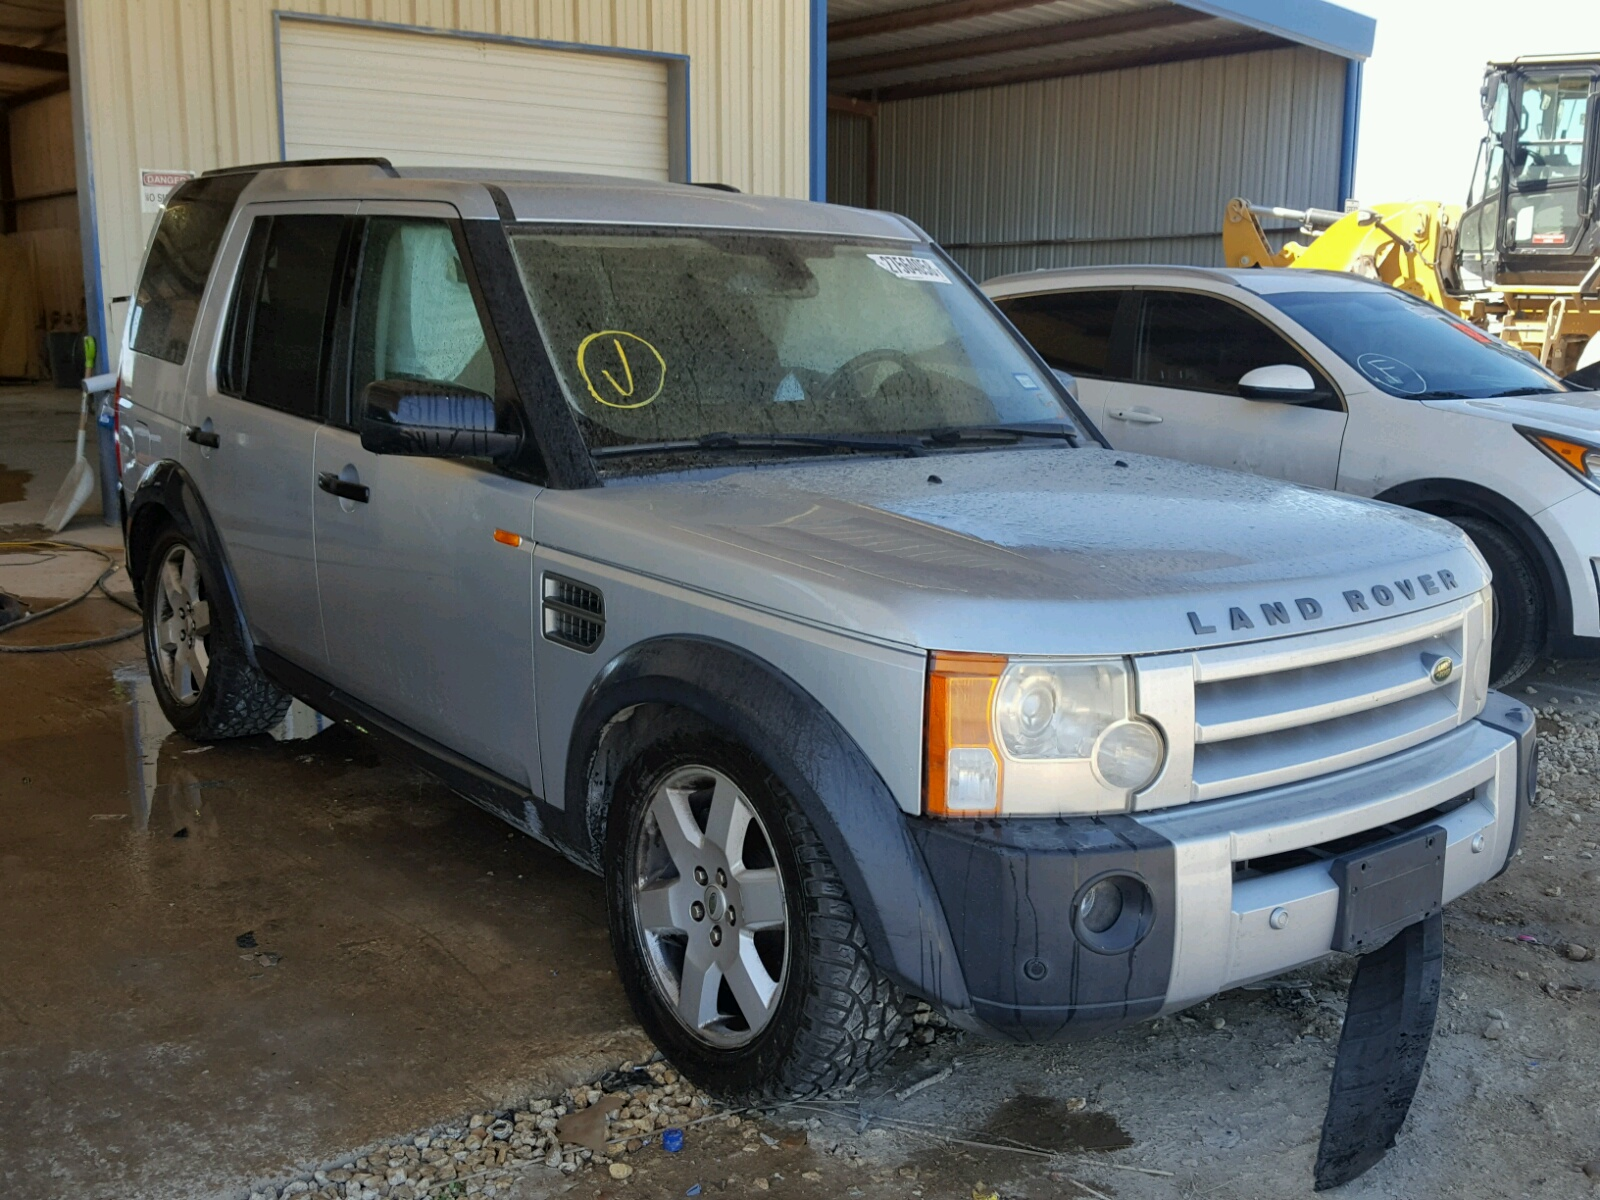 online salvage auto moines in copart for view carfinder sale landrover of des black title hse cert rover angle on ia en land auctions lot